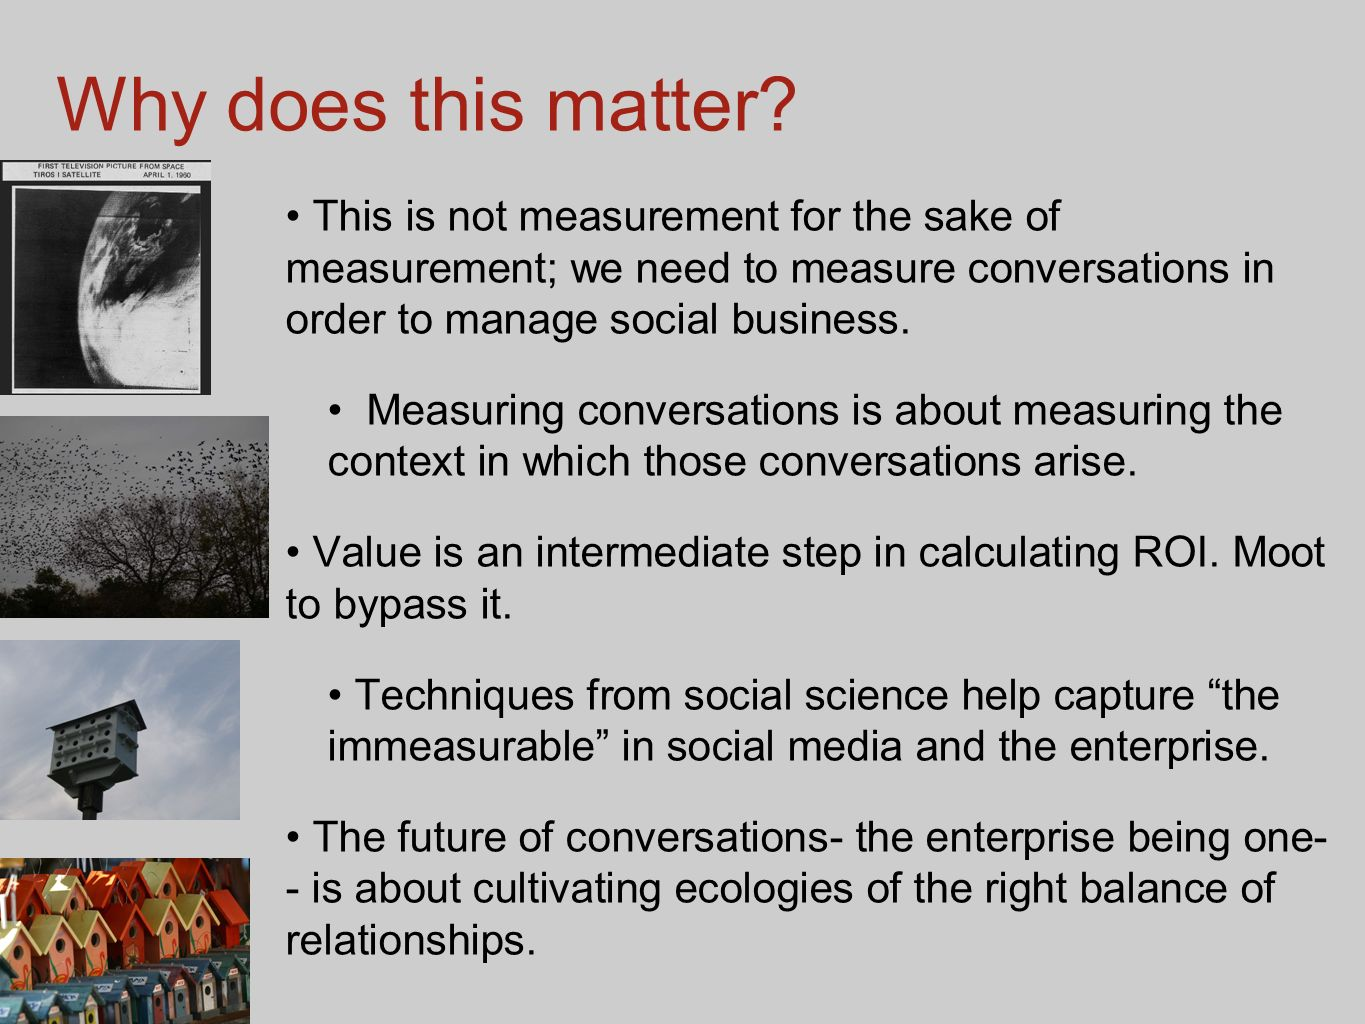 46 Why does this matter? This is not measurement for the sake of measurement; we need to measure conversations in order to manage social business. Mea